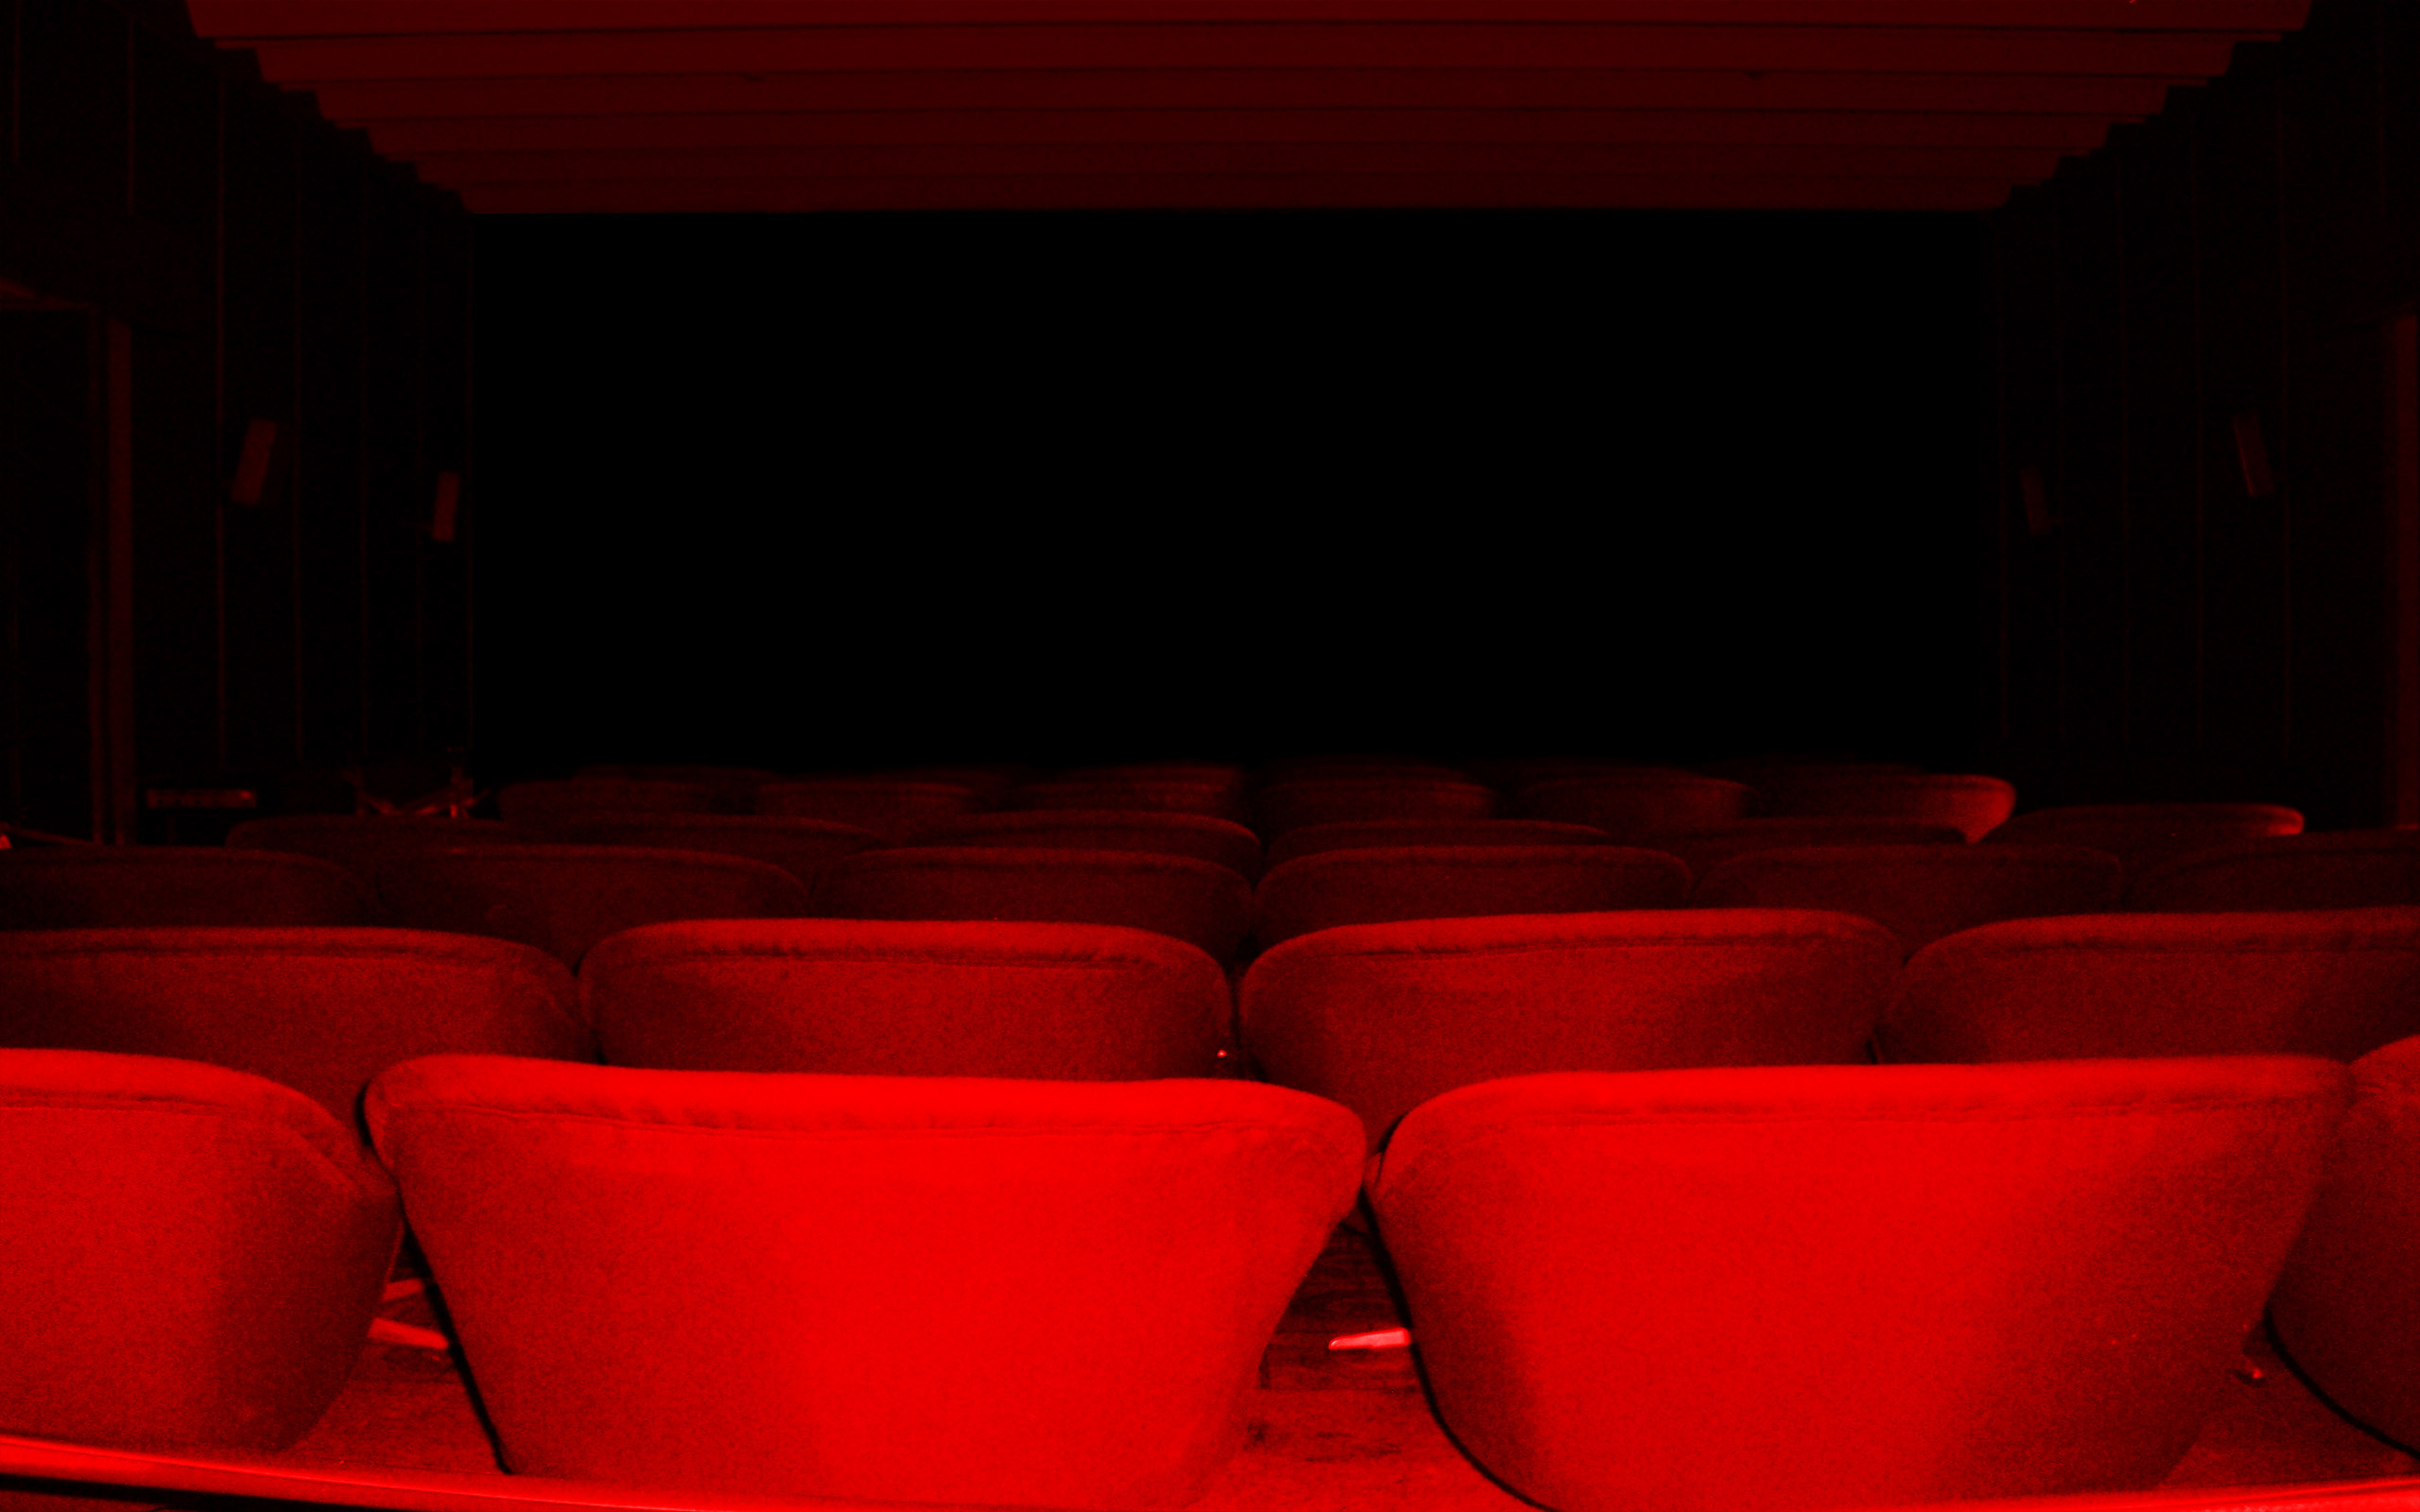 home theater wallpaper for desktop (53+ images)